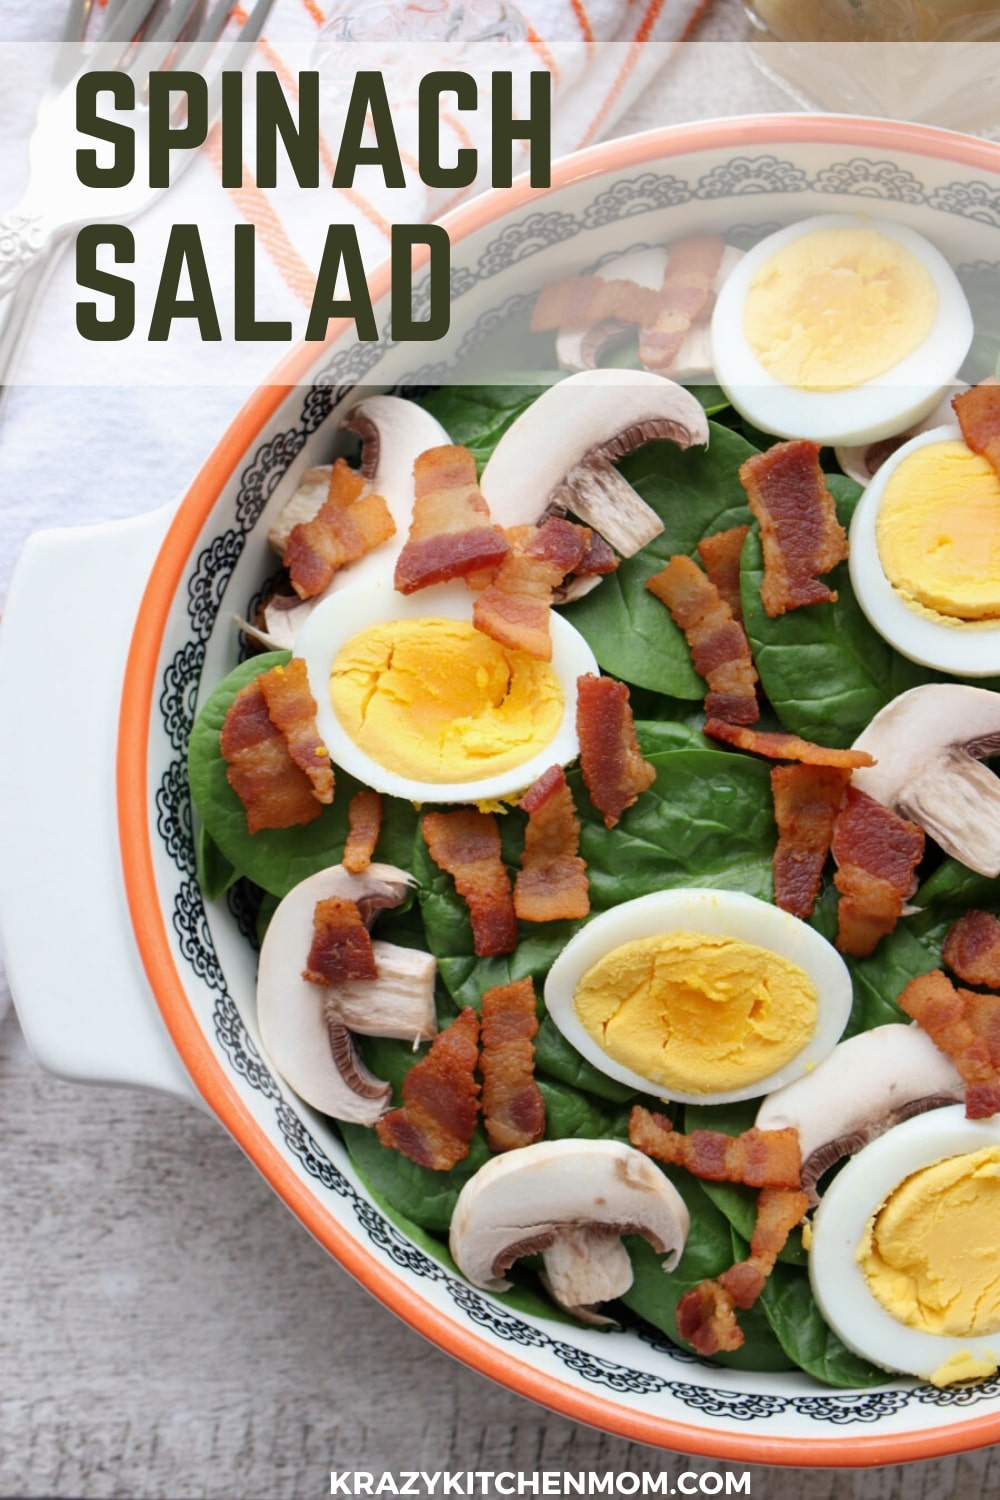 Spinach Salad with Warm Bacon Dressing is a classic salad made with a vinaigrette that uses bacon drippings instead of oil.  via @krazykitchenmom